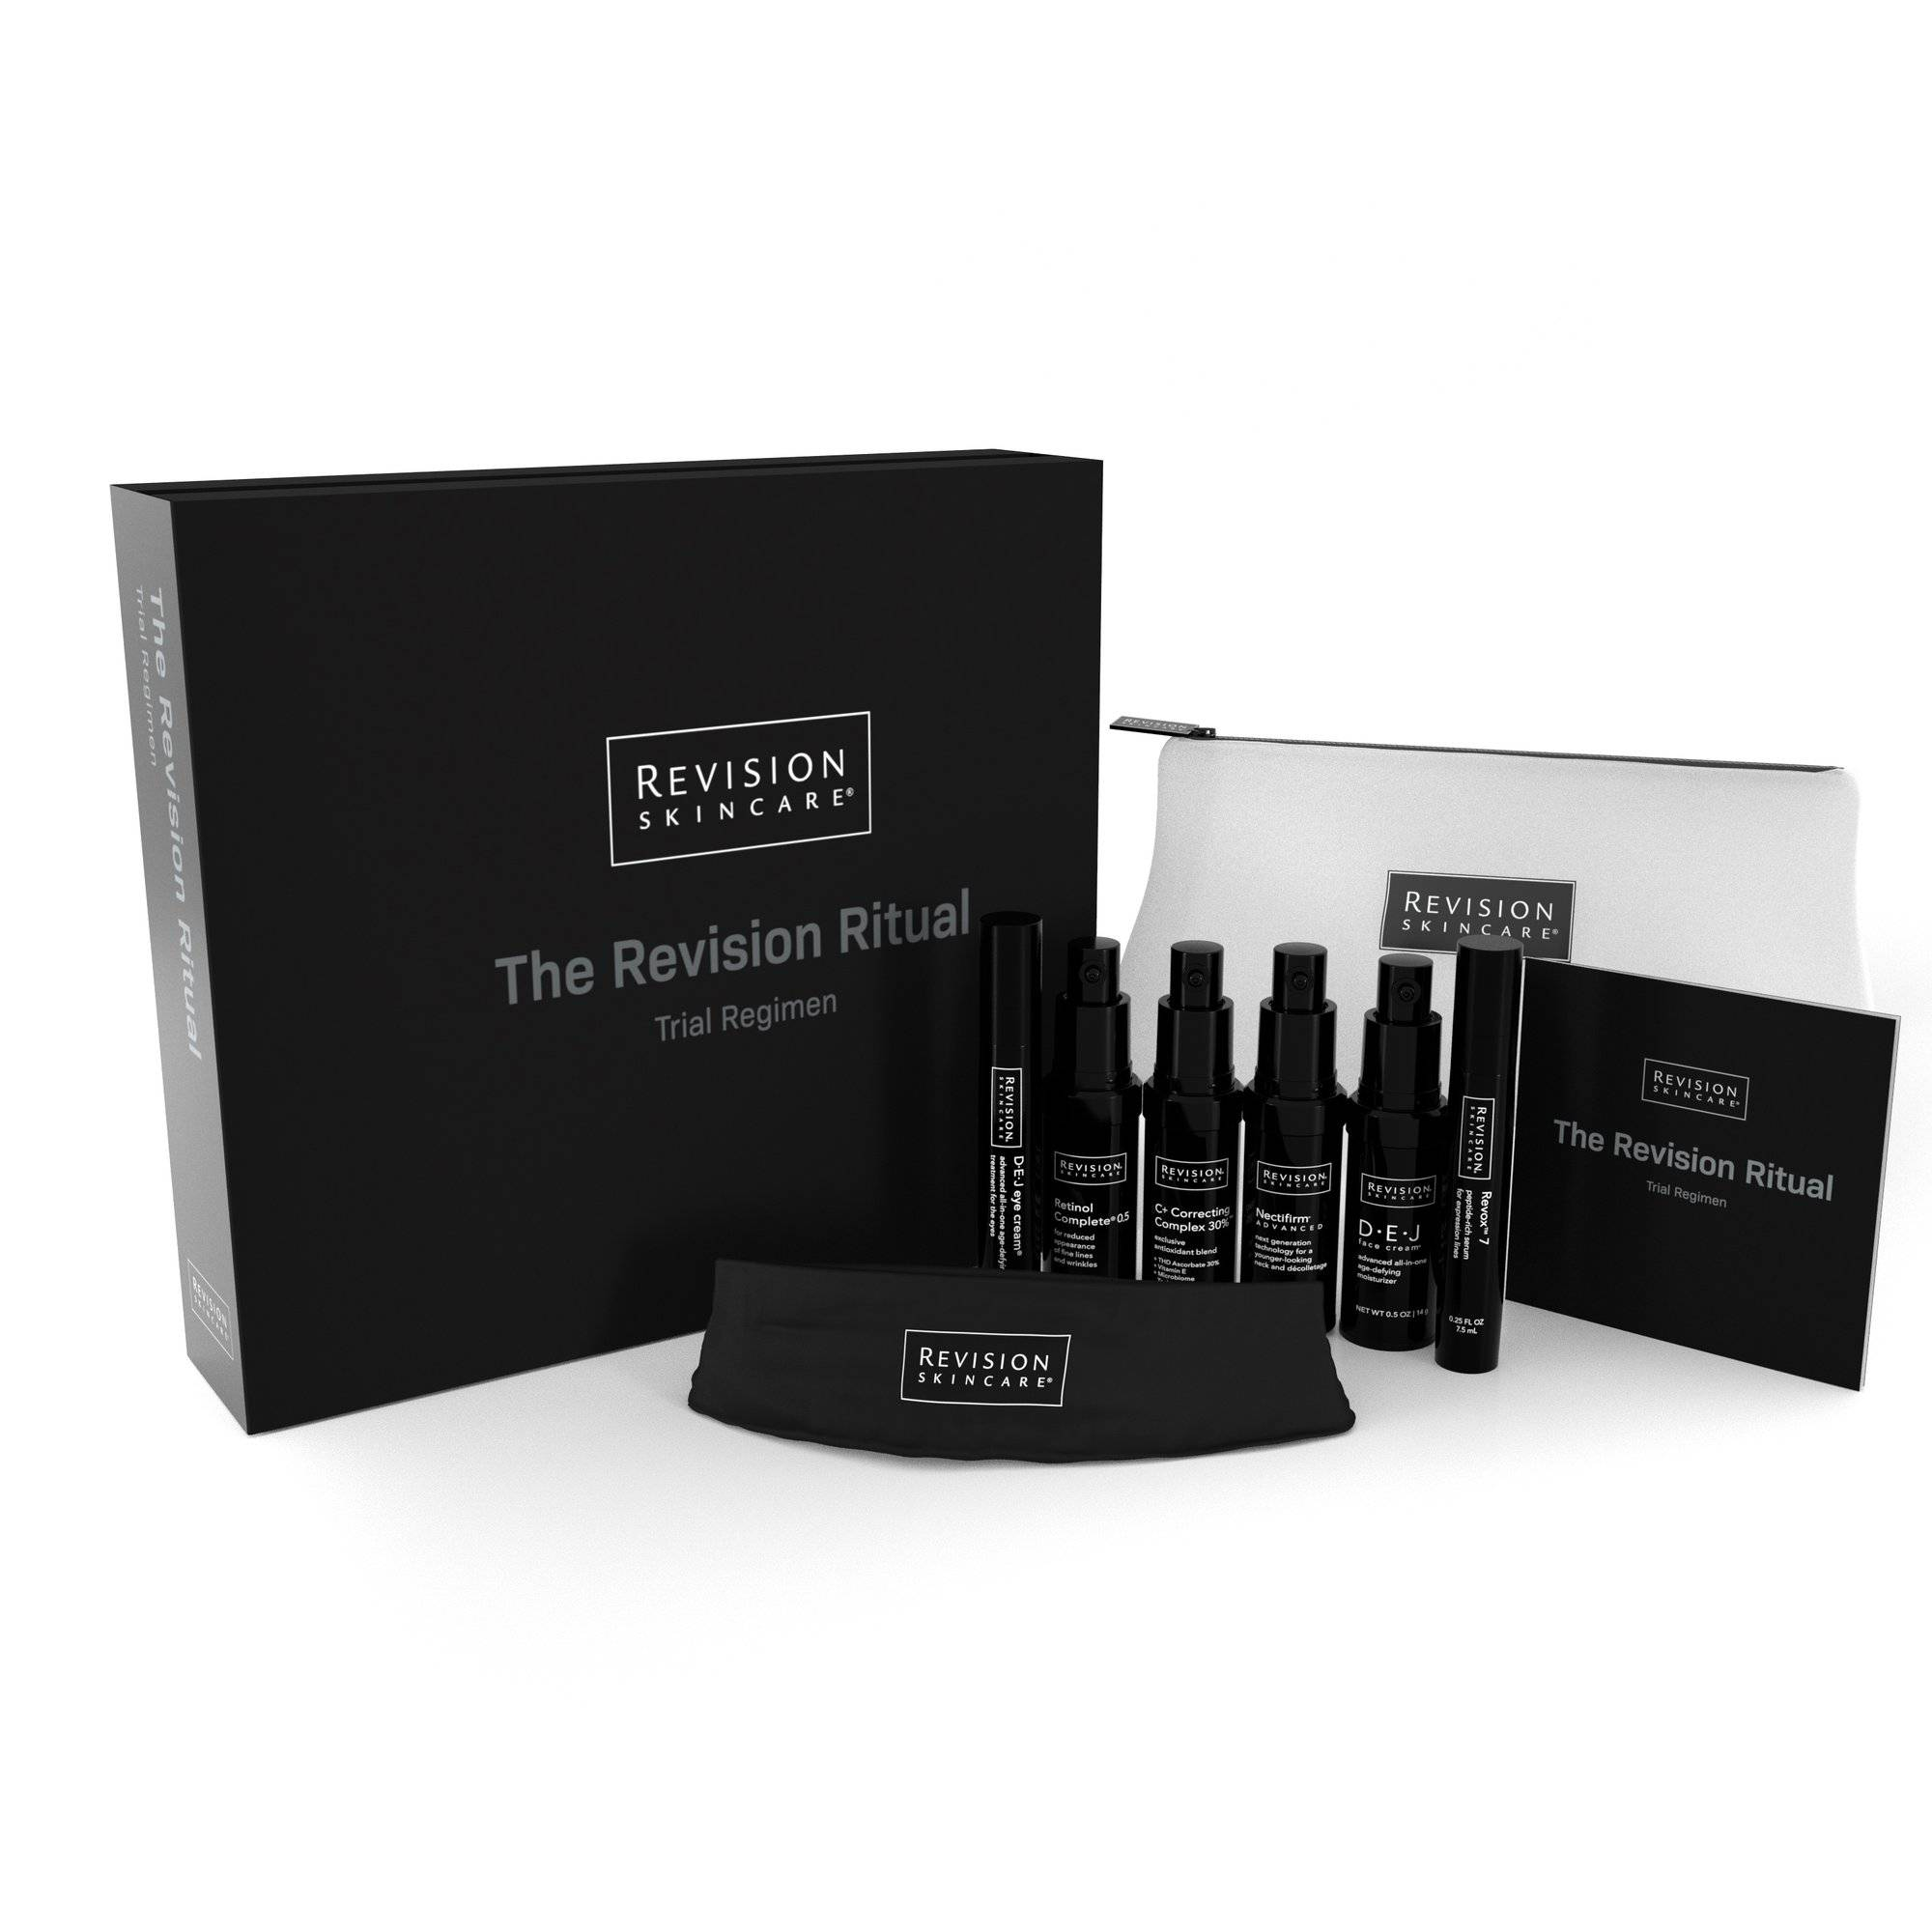 Revision Skincare Ritual Limited Edition Trial Regimen